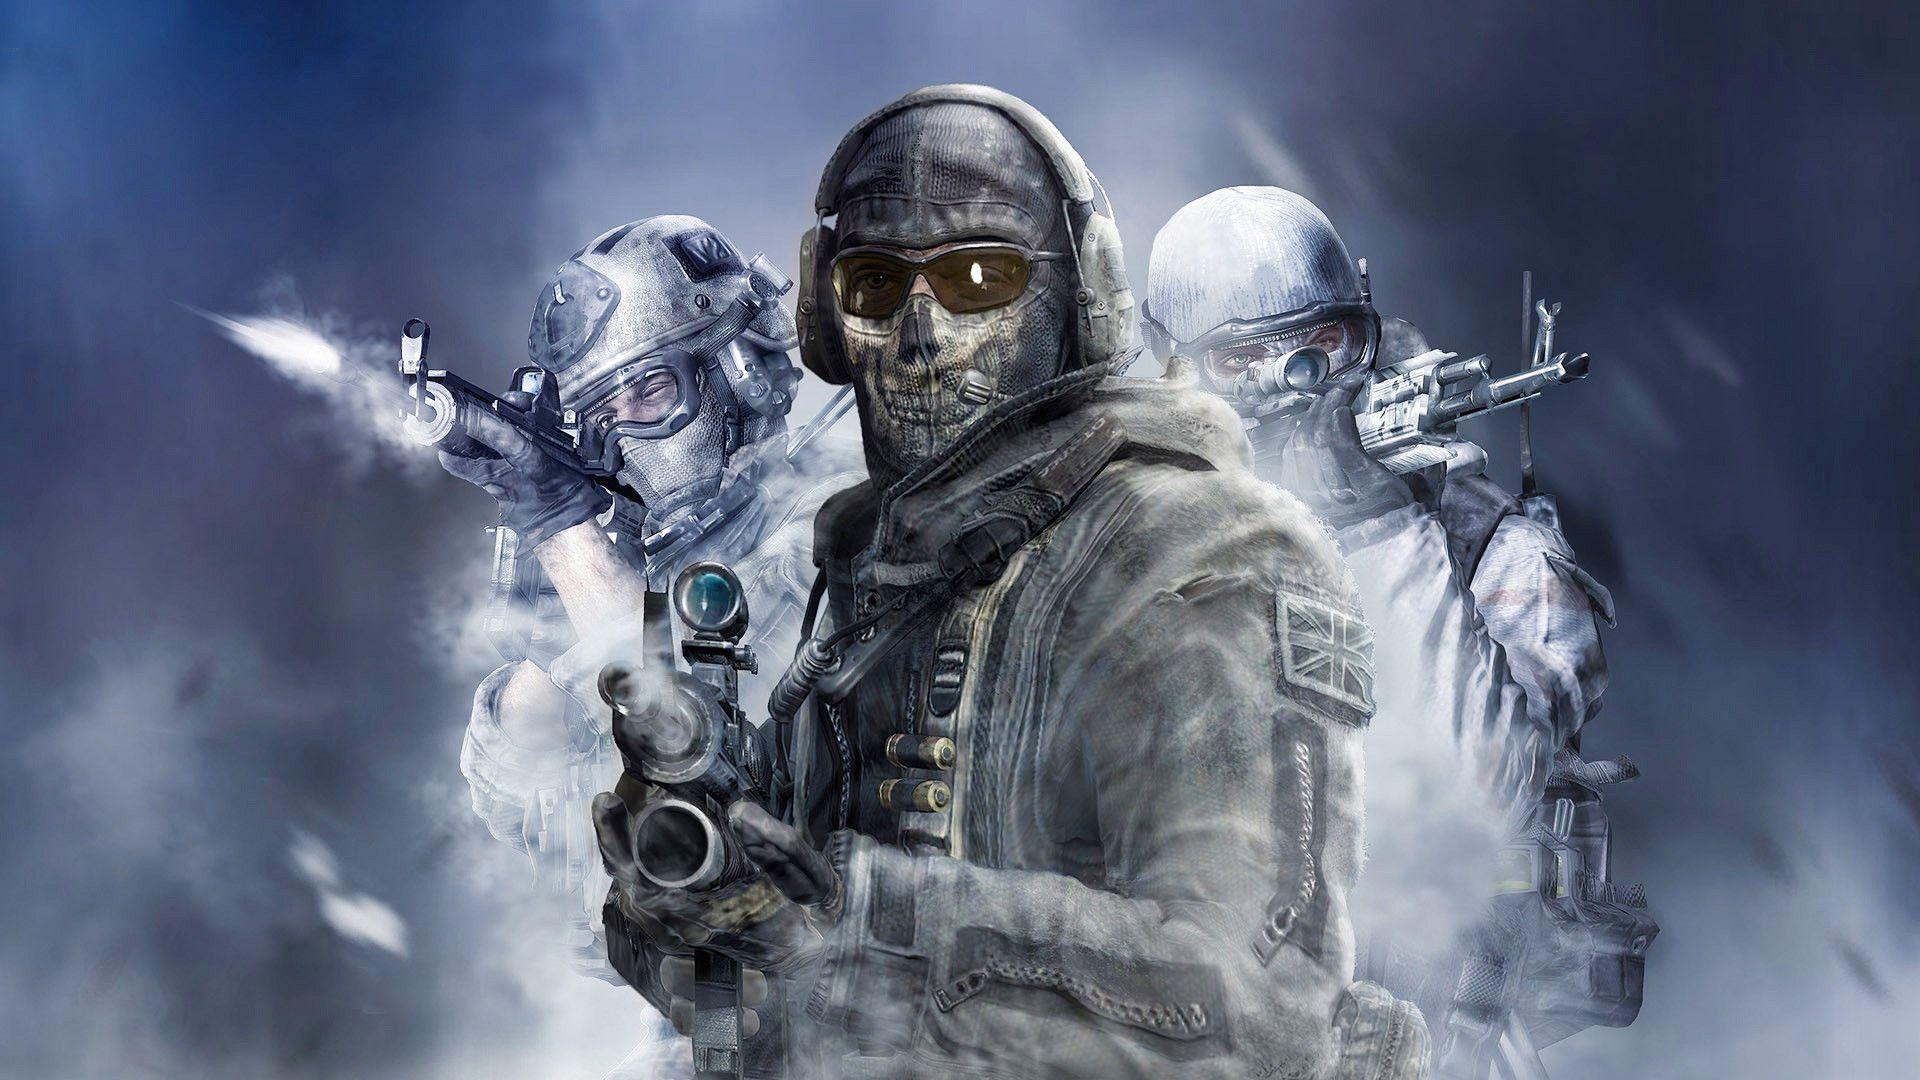 Call of Duty Ghosts Wallpapers 1920x1080 in HD | Call of Duty .